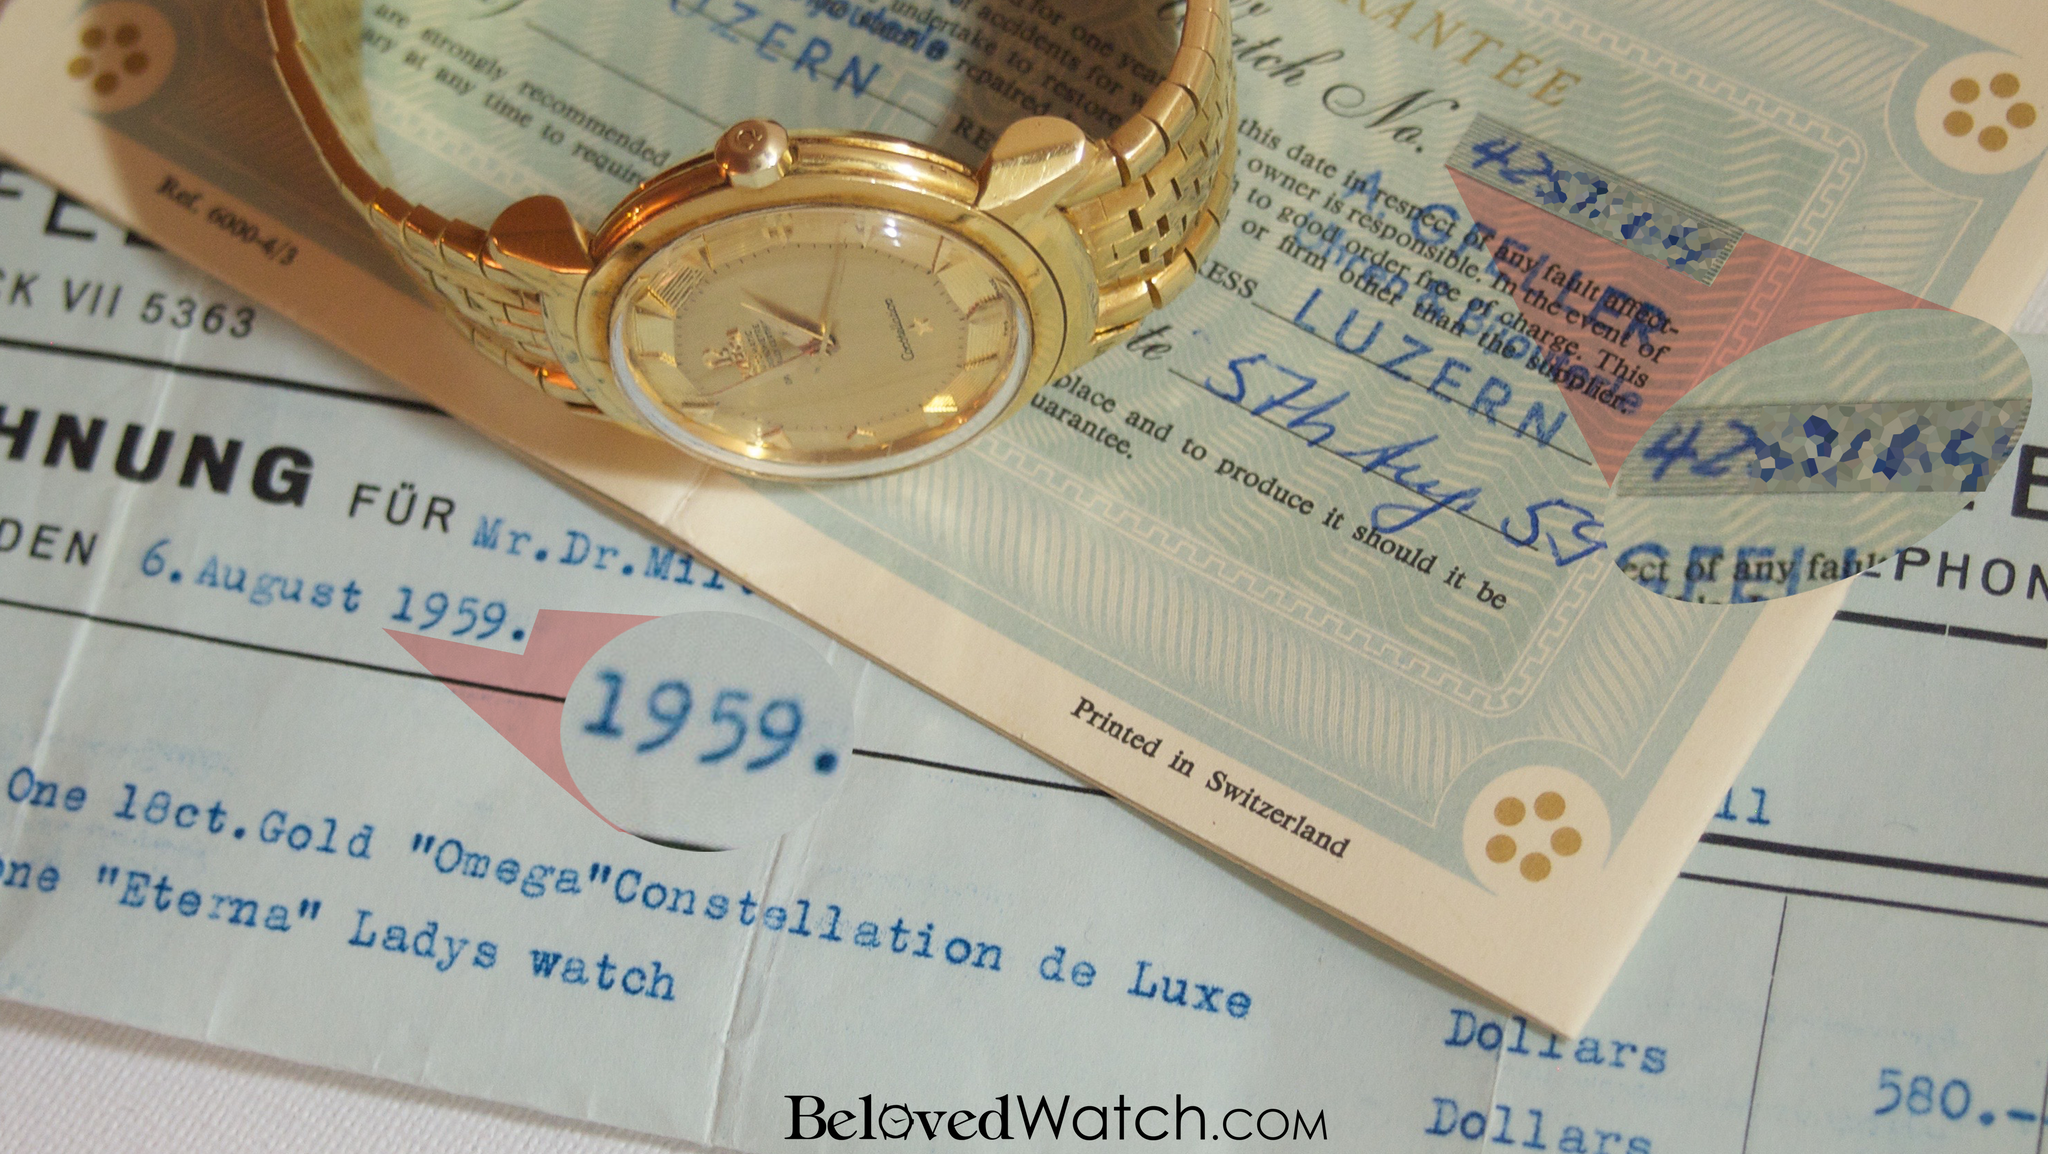 Omega Grand Luxe Constellation with 18k Yellow Gold Model 2930